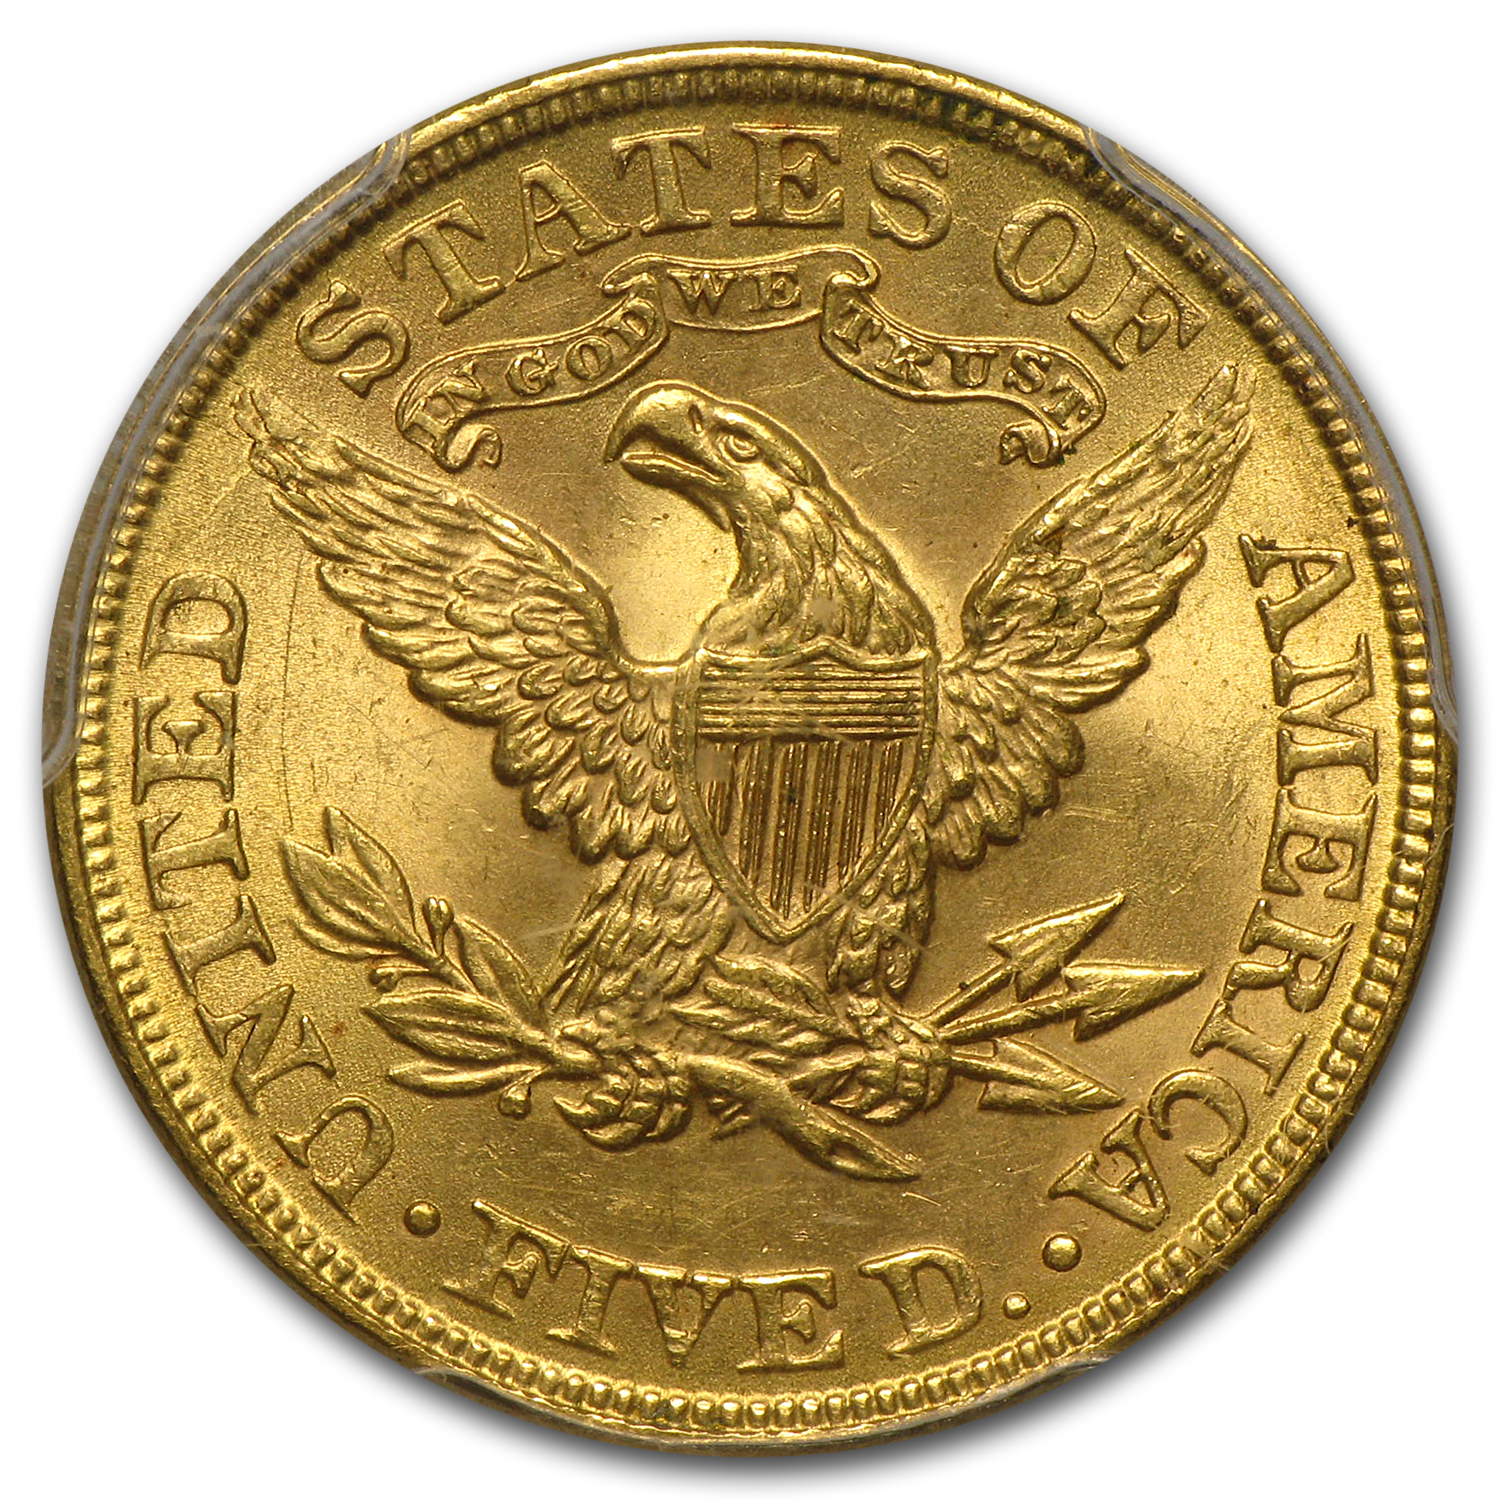 $5 Liberty Gold Half Eagle - MS-64 PCGS